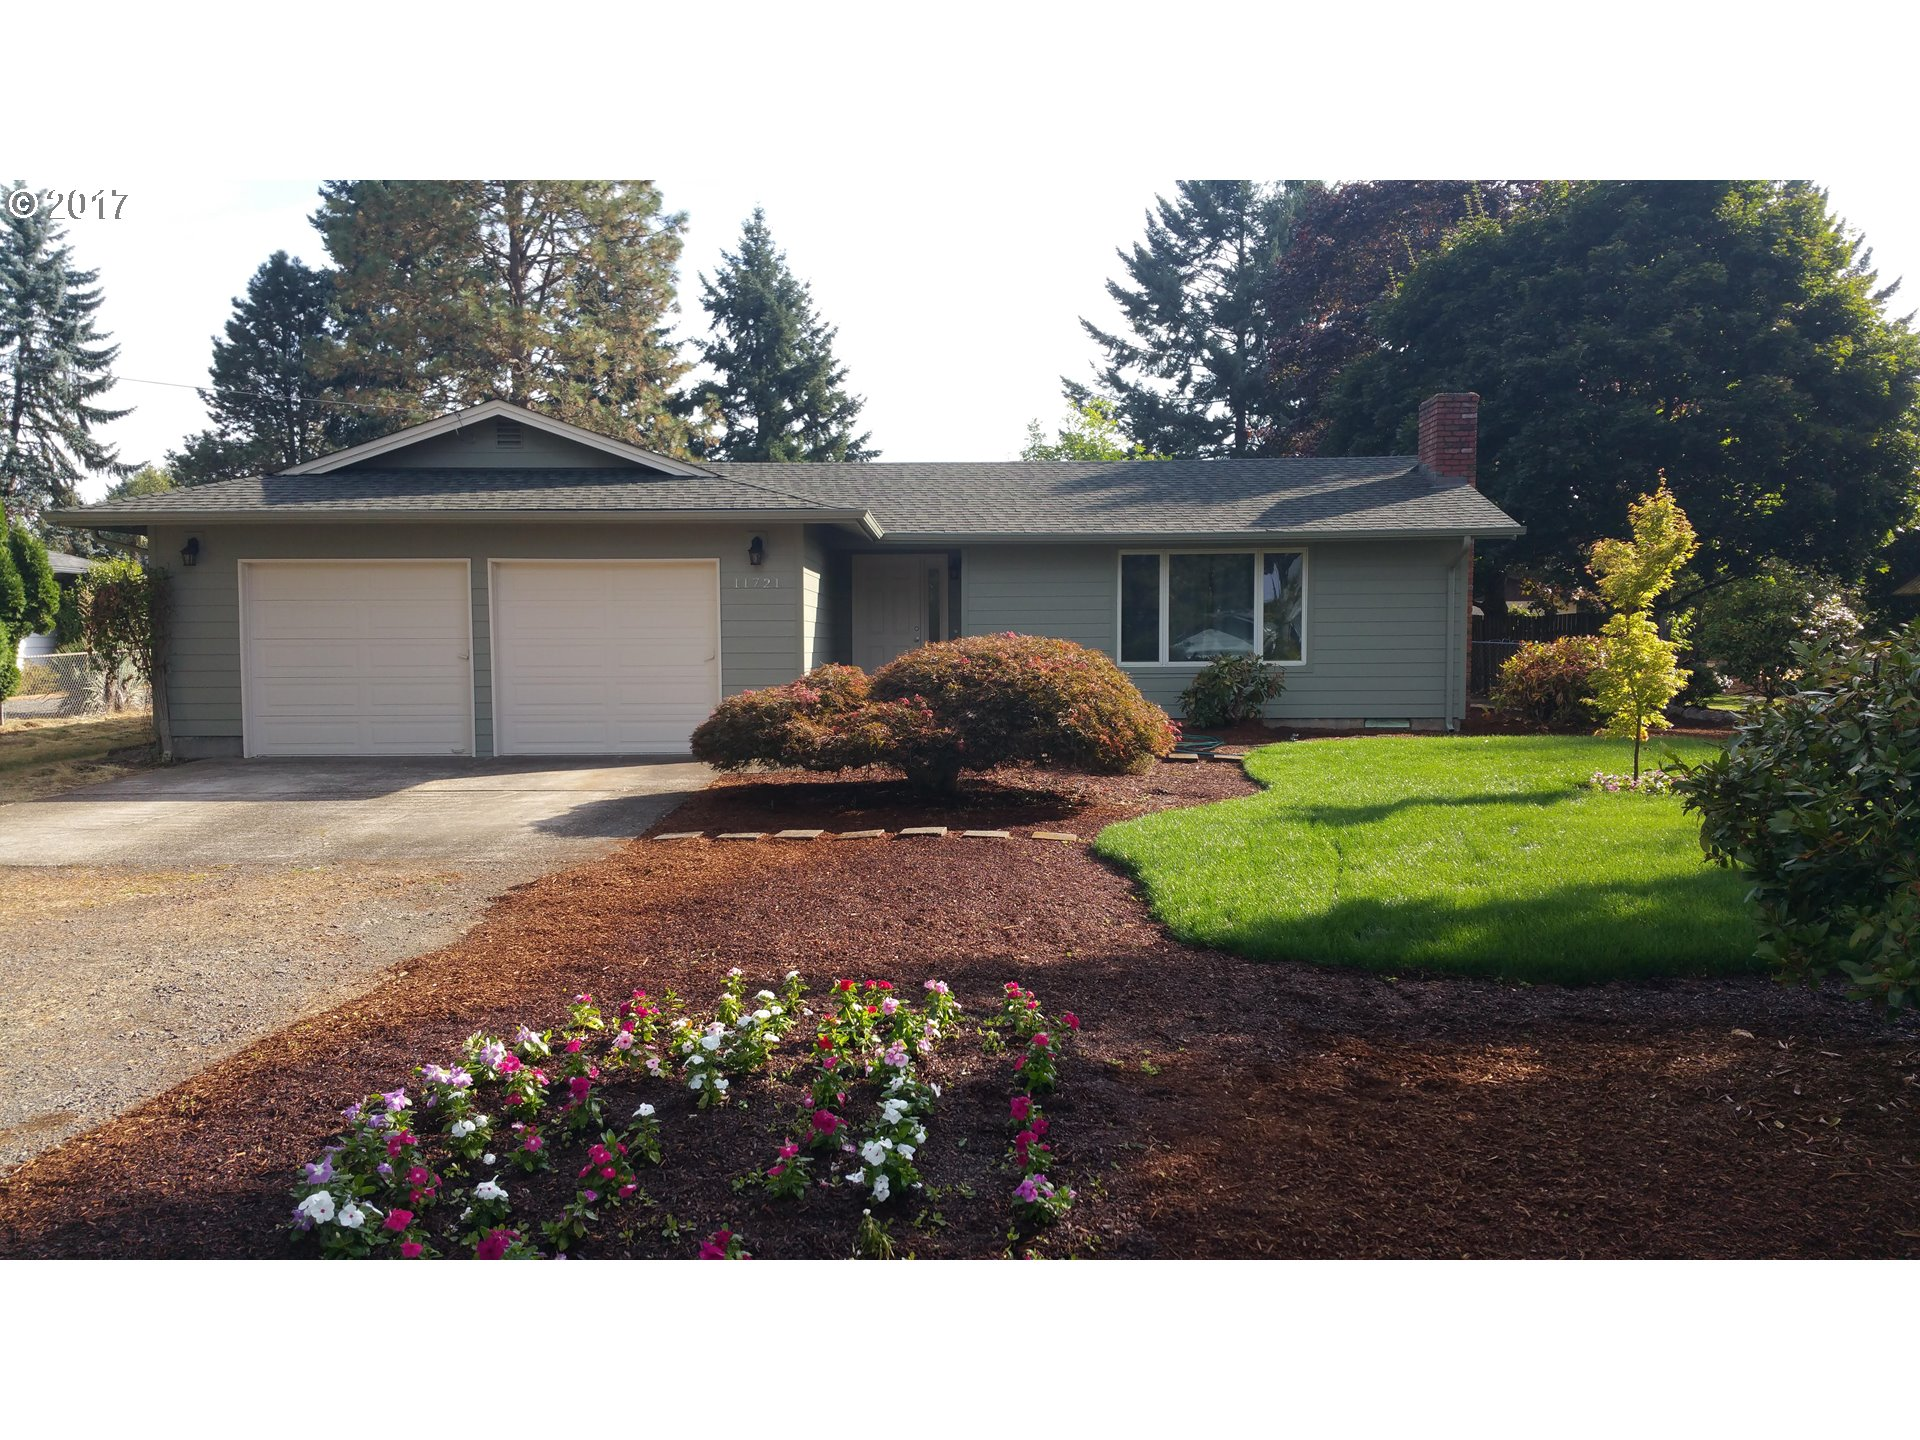 11721 PARTLOW RD, Oregon City, OR 97045